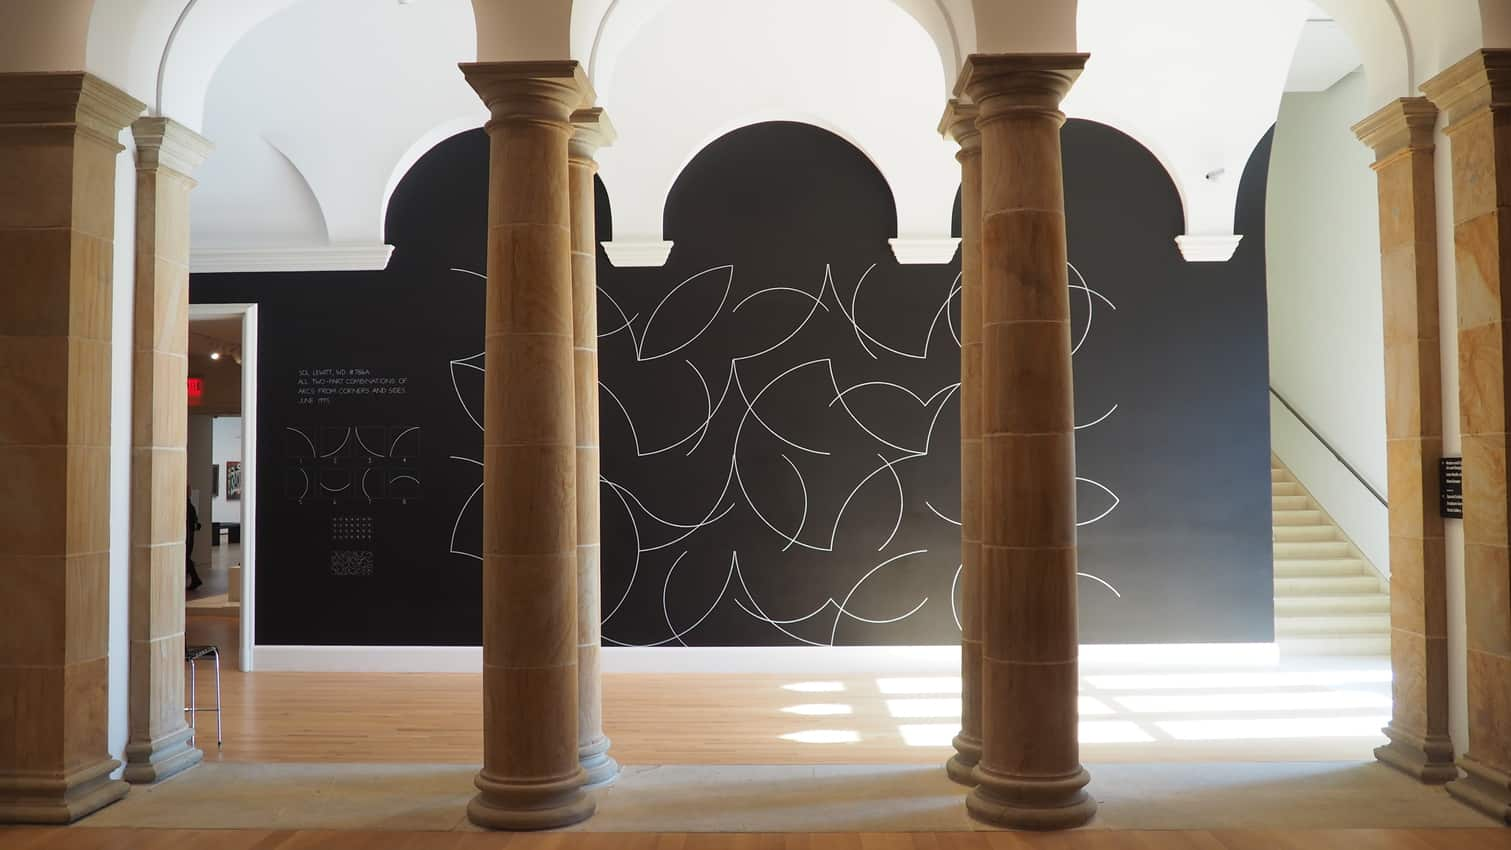 An artwork at the Yale University Art Gallery